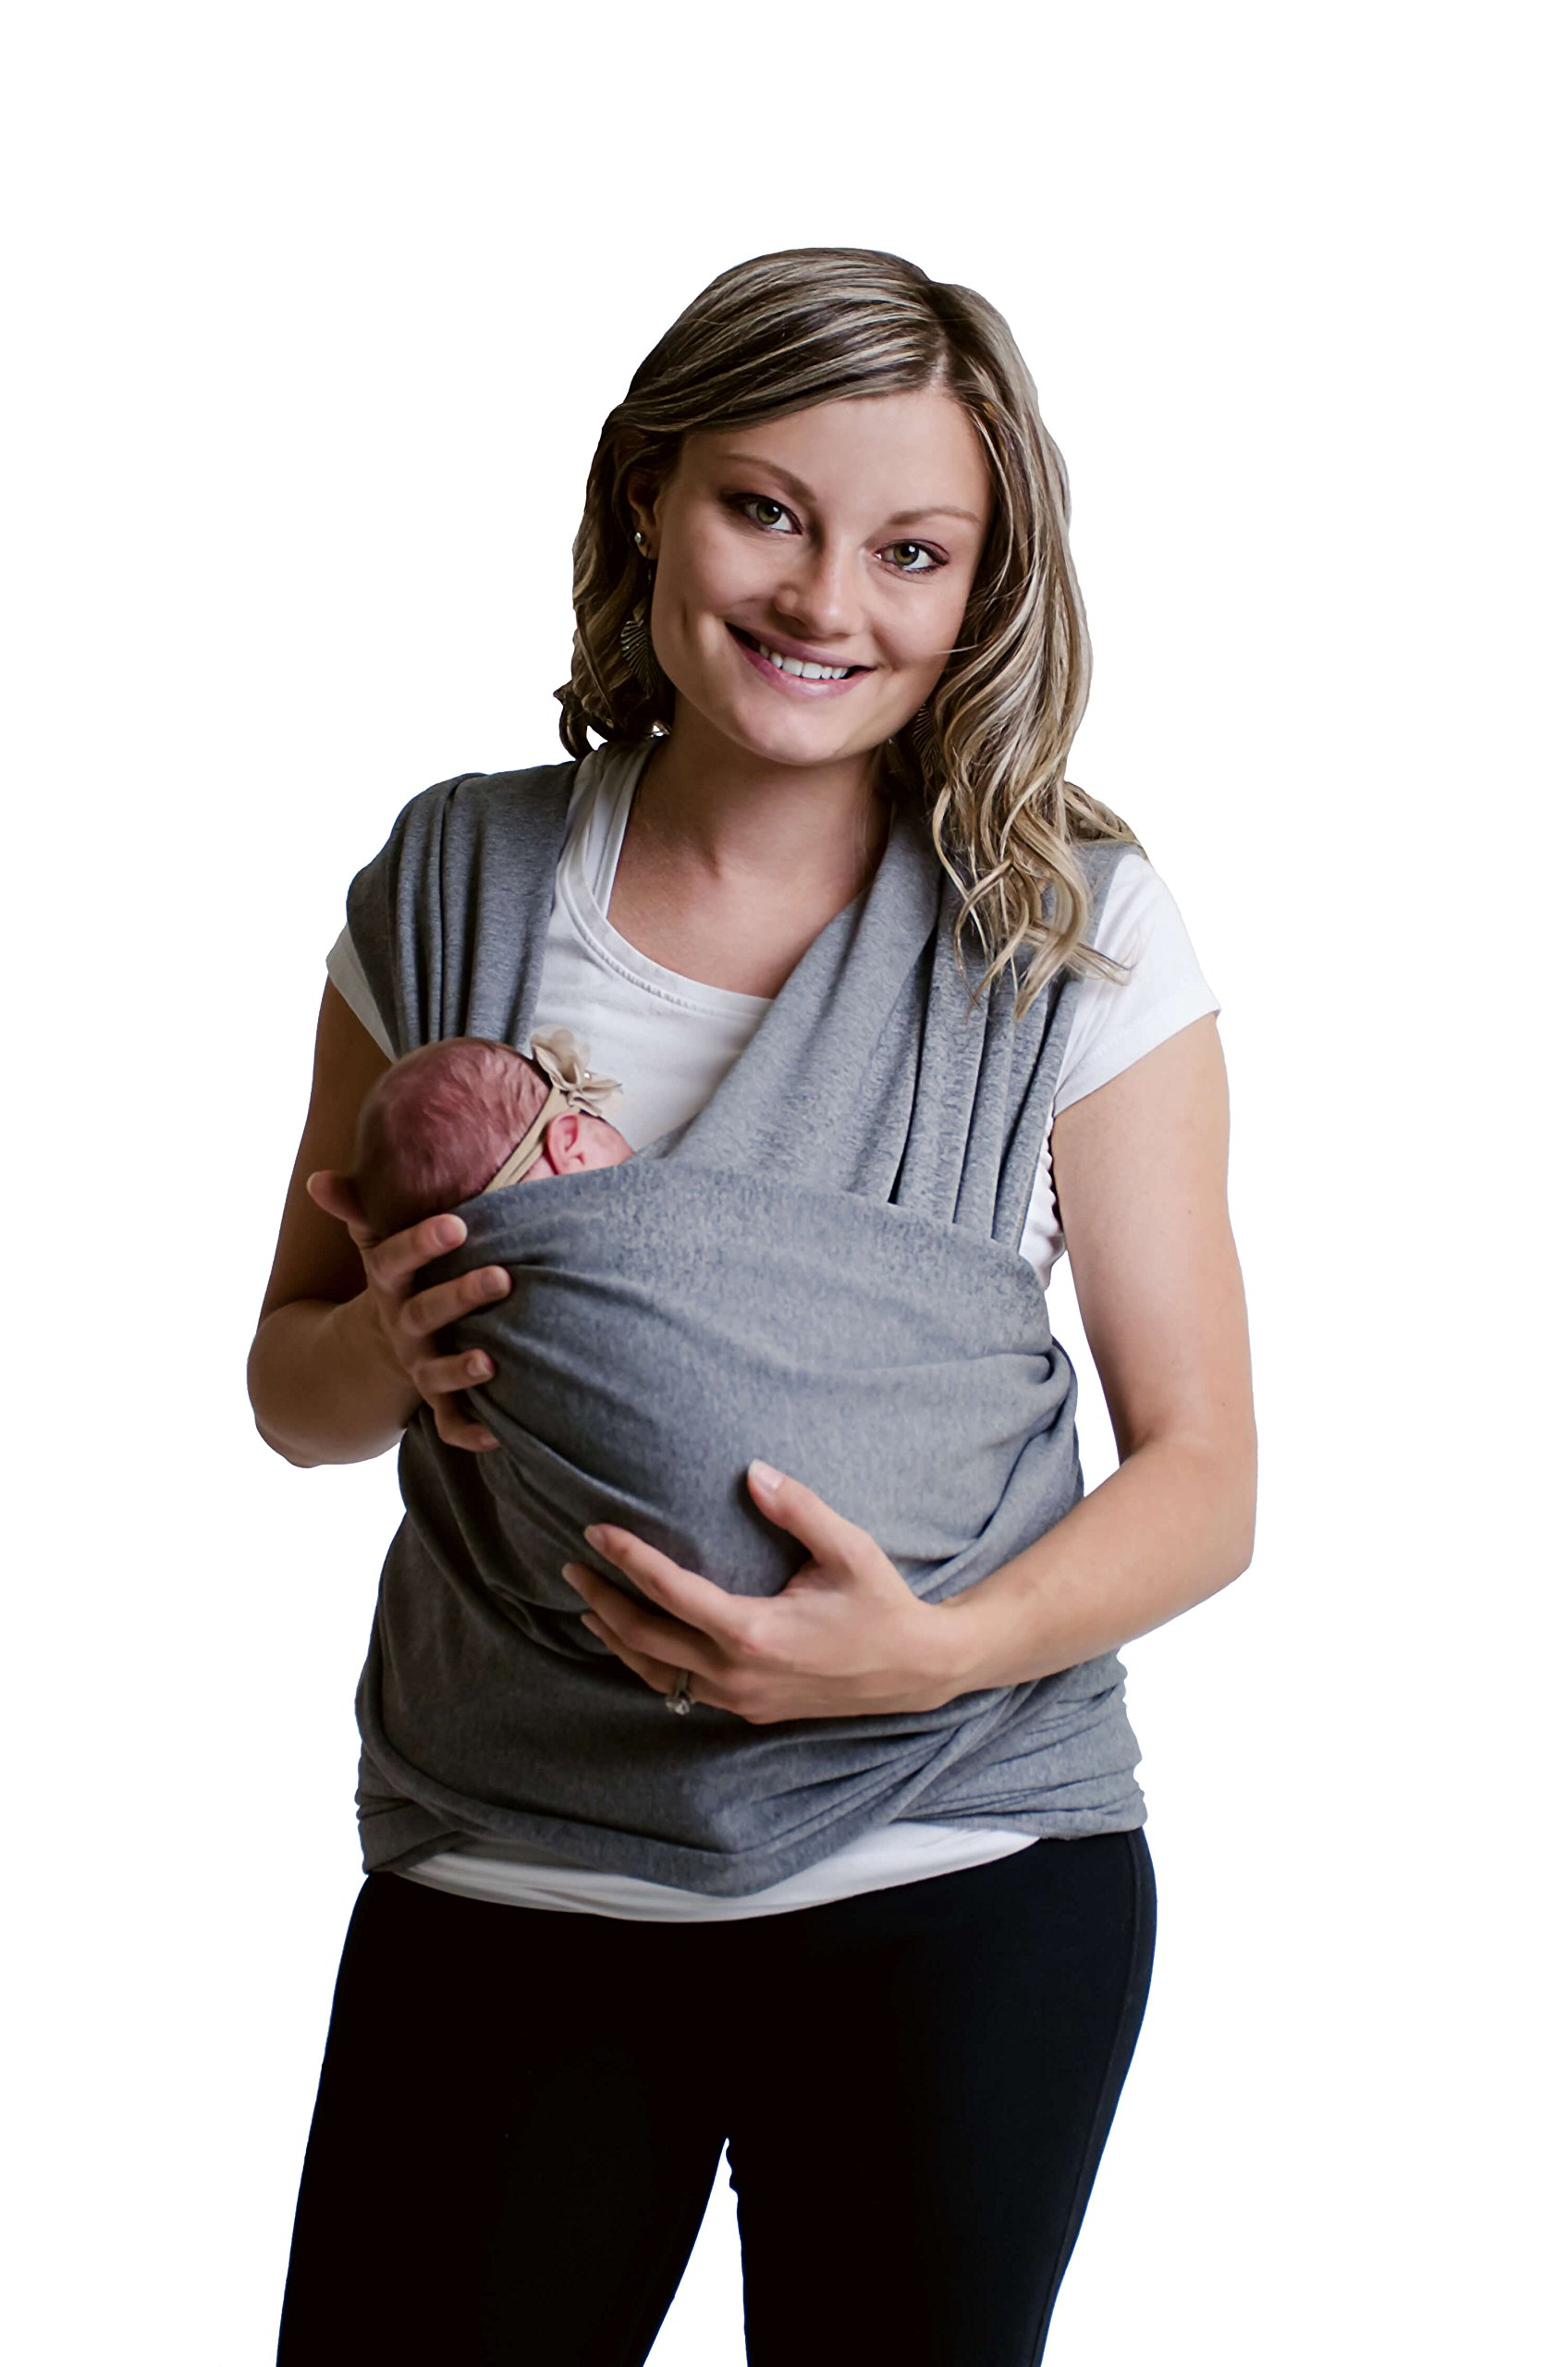 2 Baby Carrier Sling Wrap For New Mothers   3-in-1: Baby Sling, Post Maternity Belt, Blanket Wrap   Travel Bag: Easy Storage, Light Weight, Durable   Step-by-Step Manual